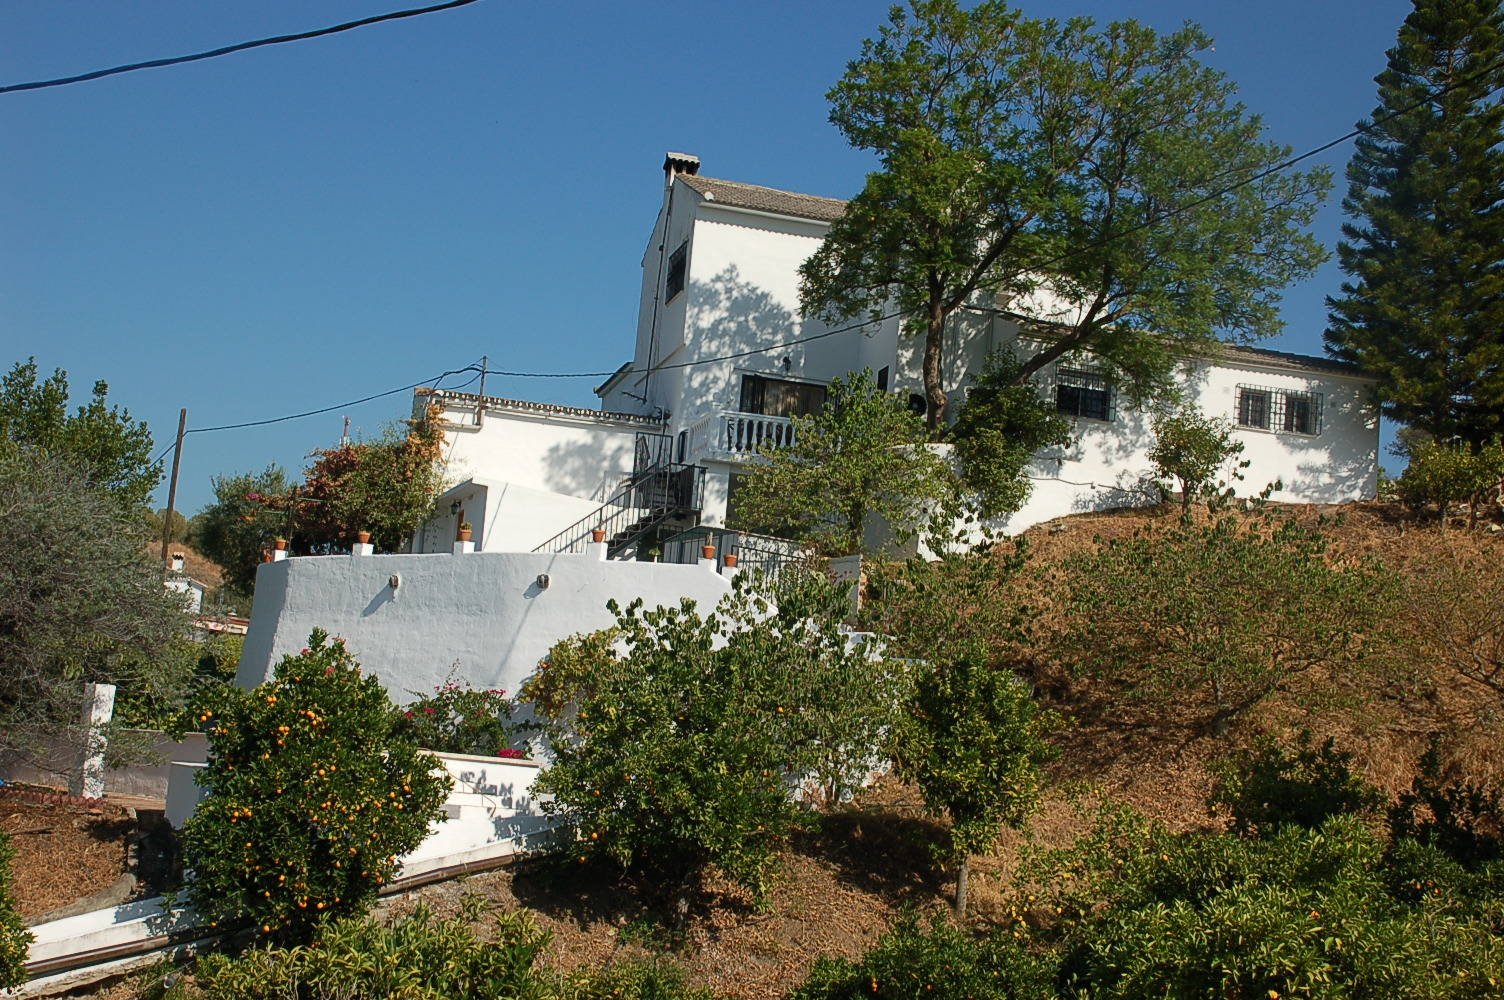 RiS 75 Large family finca or guesthouse opportunity near Coin – 350,000€